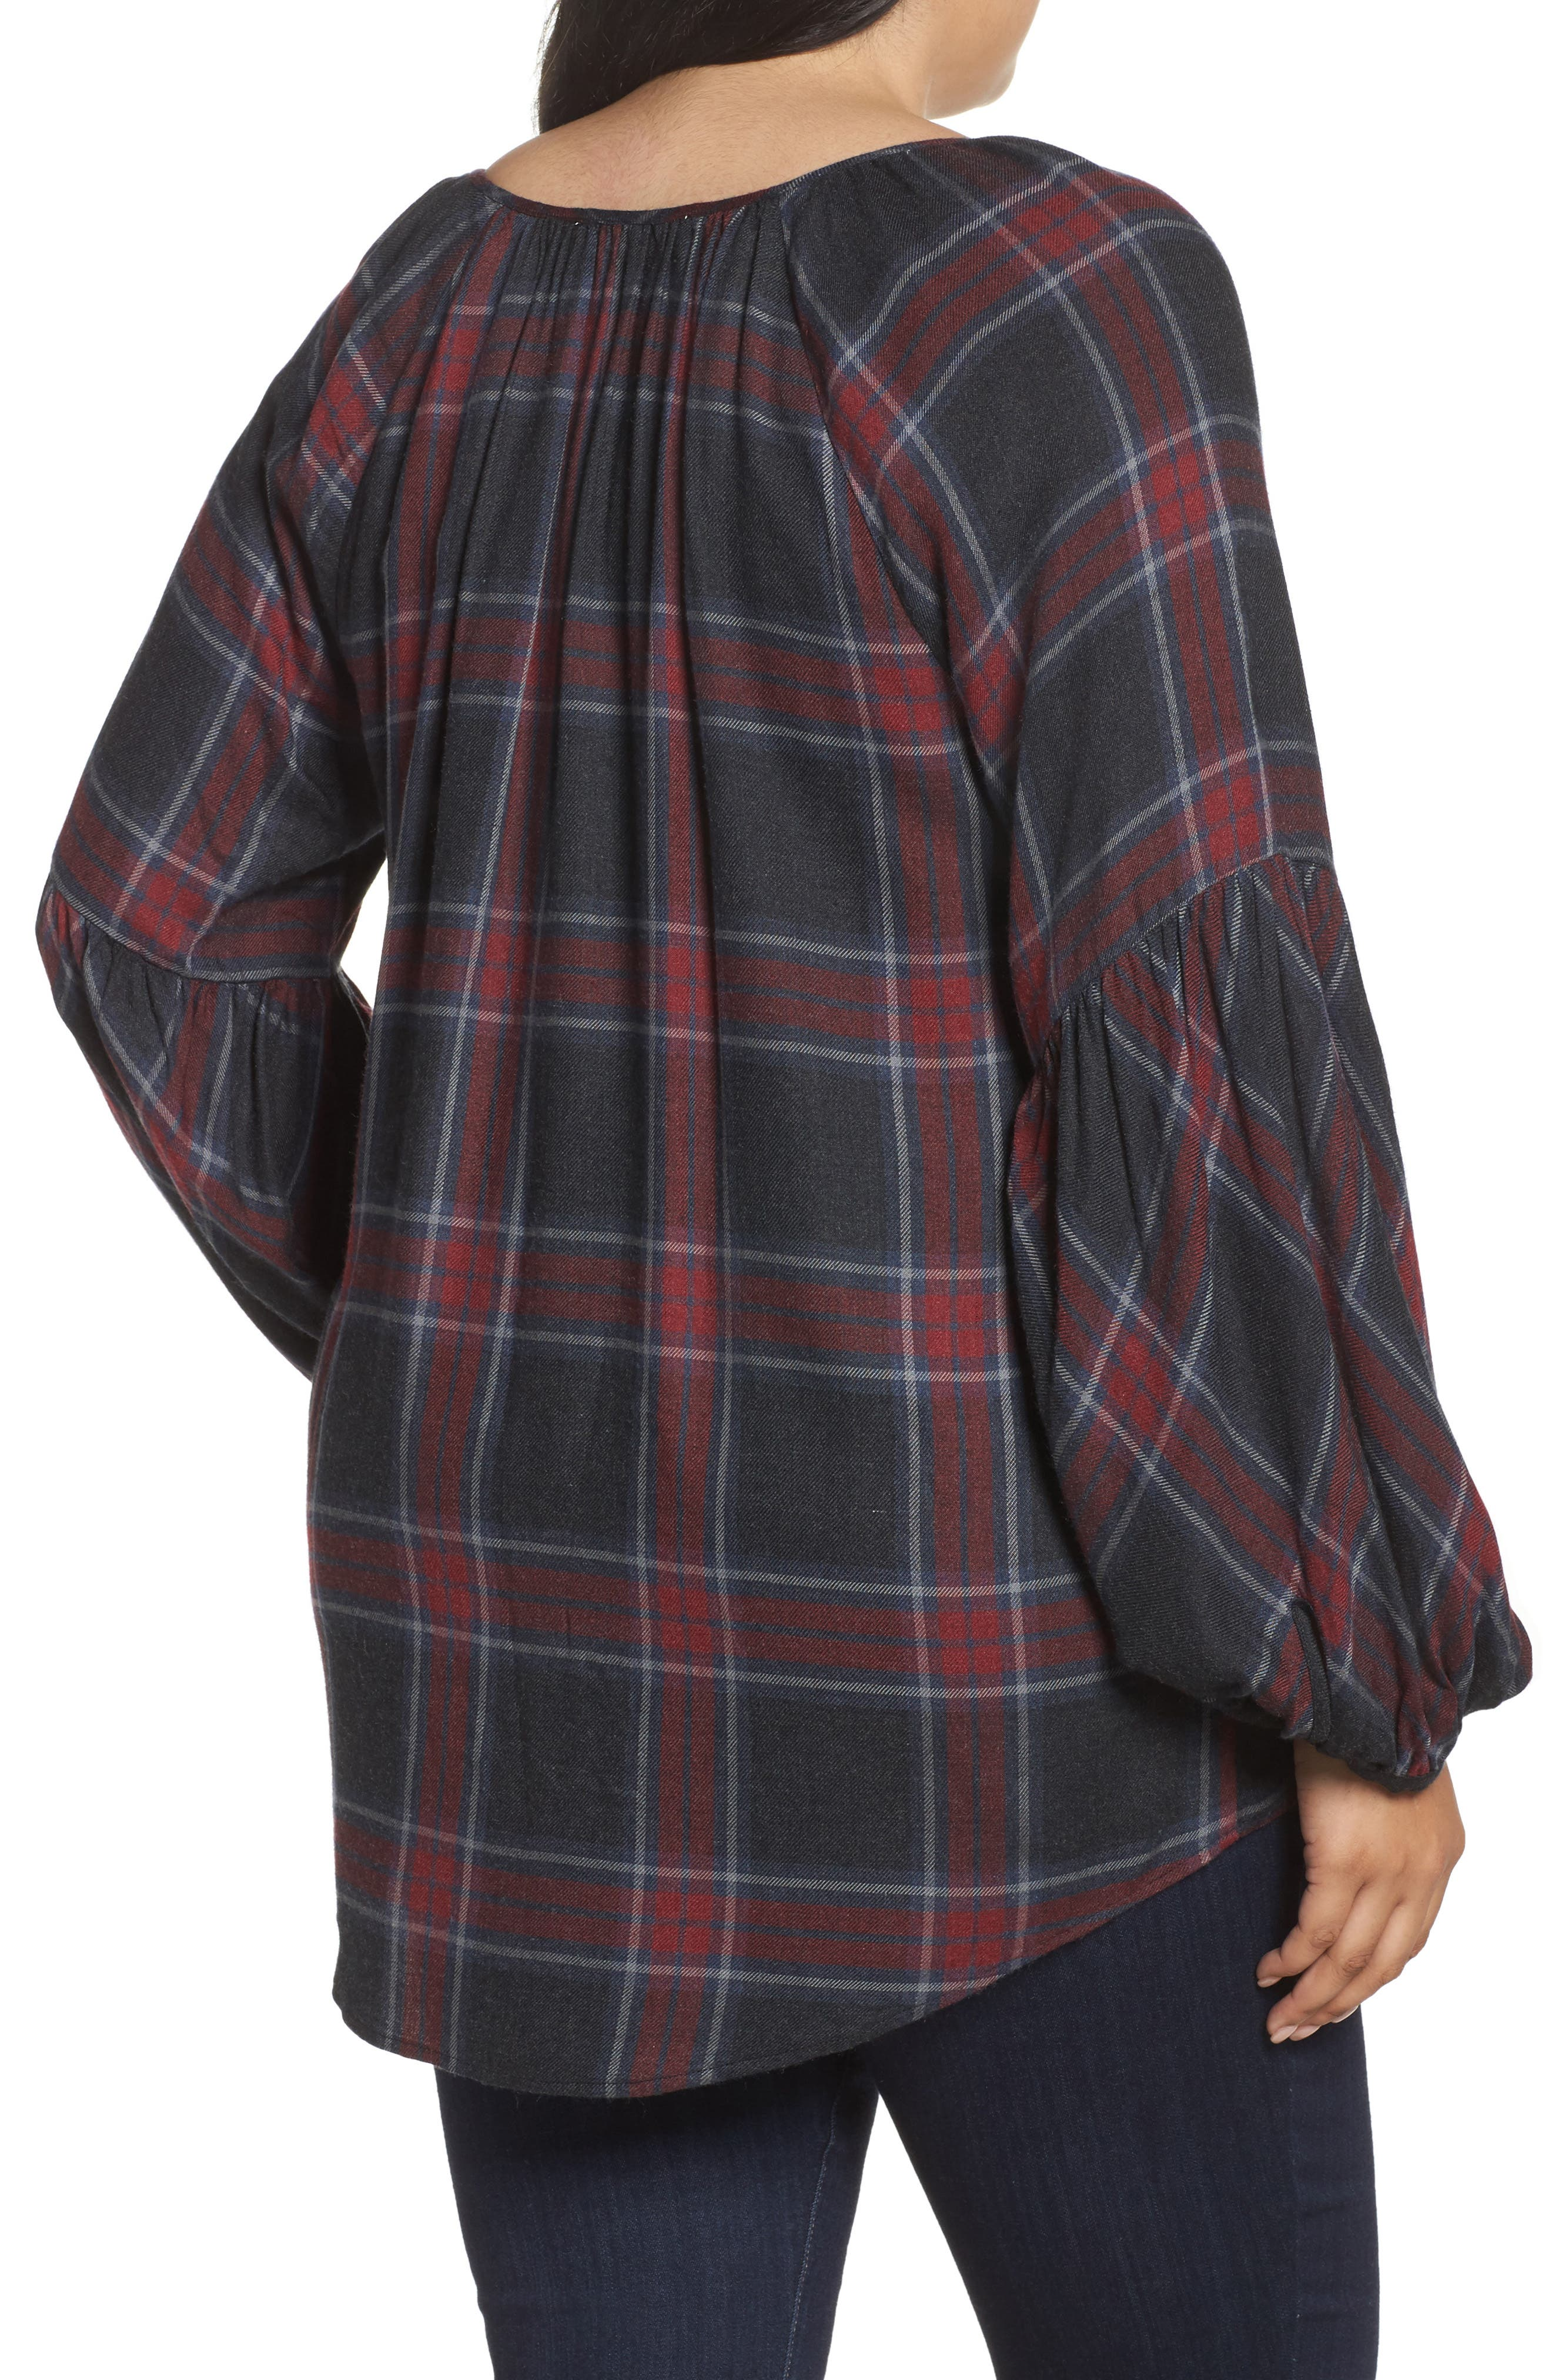 Serenade Tie Neck Plaid Top,                             Alternate thumbnail 2, color,                             Med Heather Grey